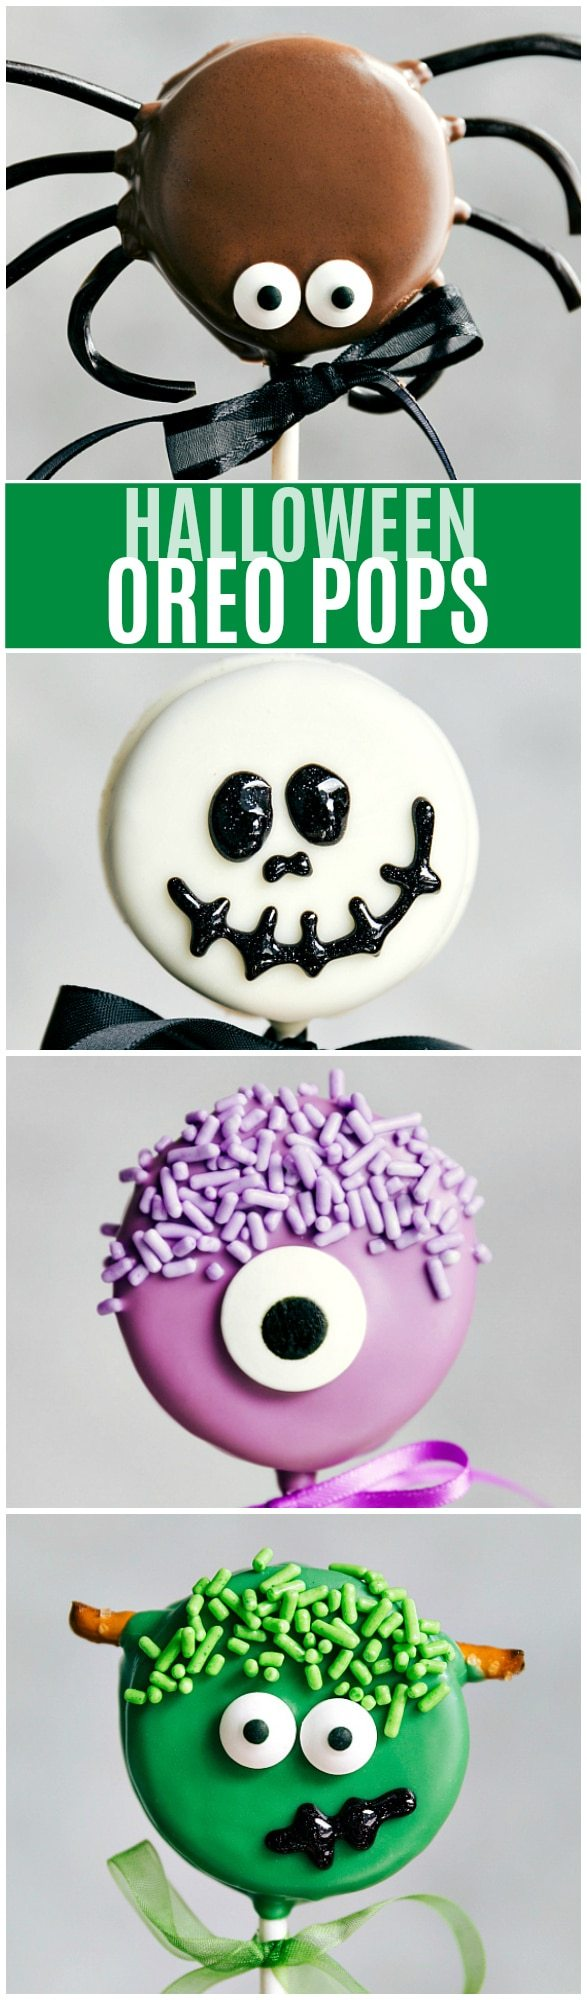 The Cutest (and super simple) Oreo Pops decorated for Halloween -- Spider Oreo Pops, Skeleton Oreo Pops, Frankenstein Oreo Pops, and Monster Oreo Pops Read the rave reviews!! via chelseasmessyapron.com